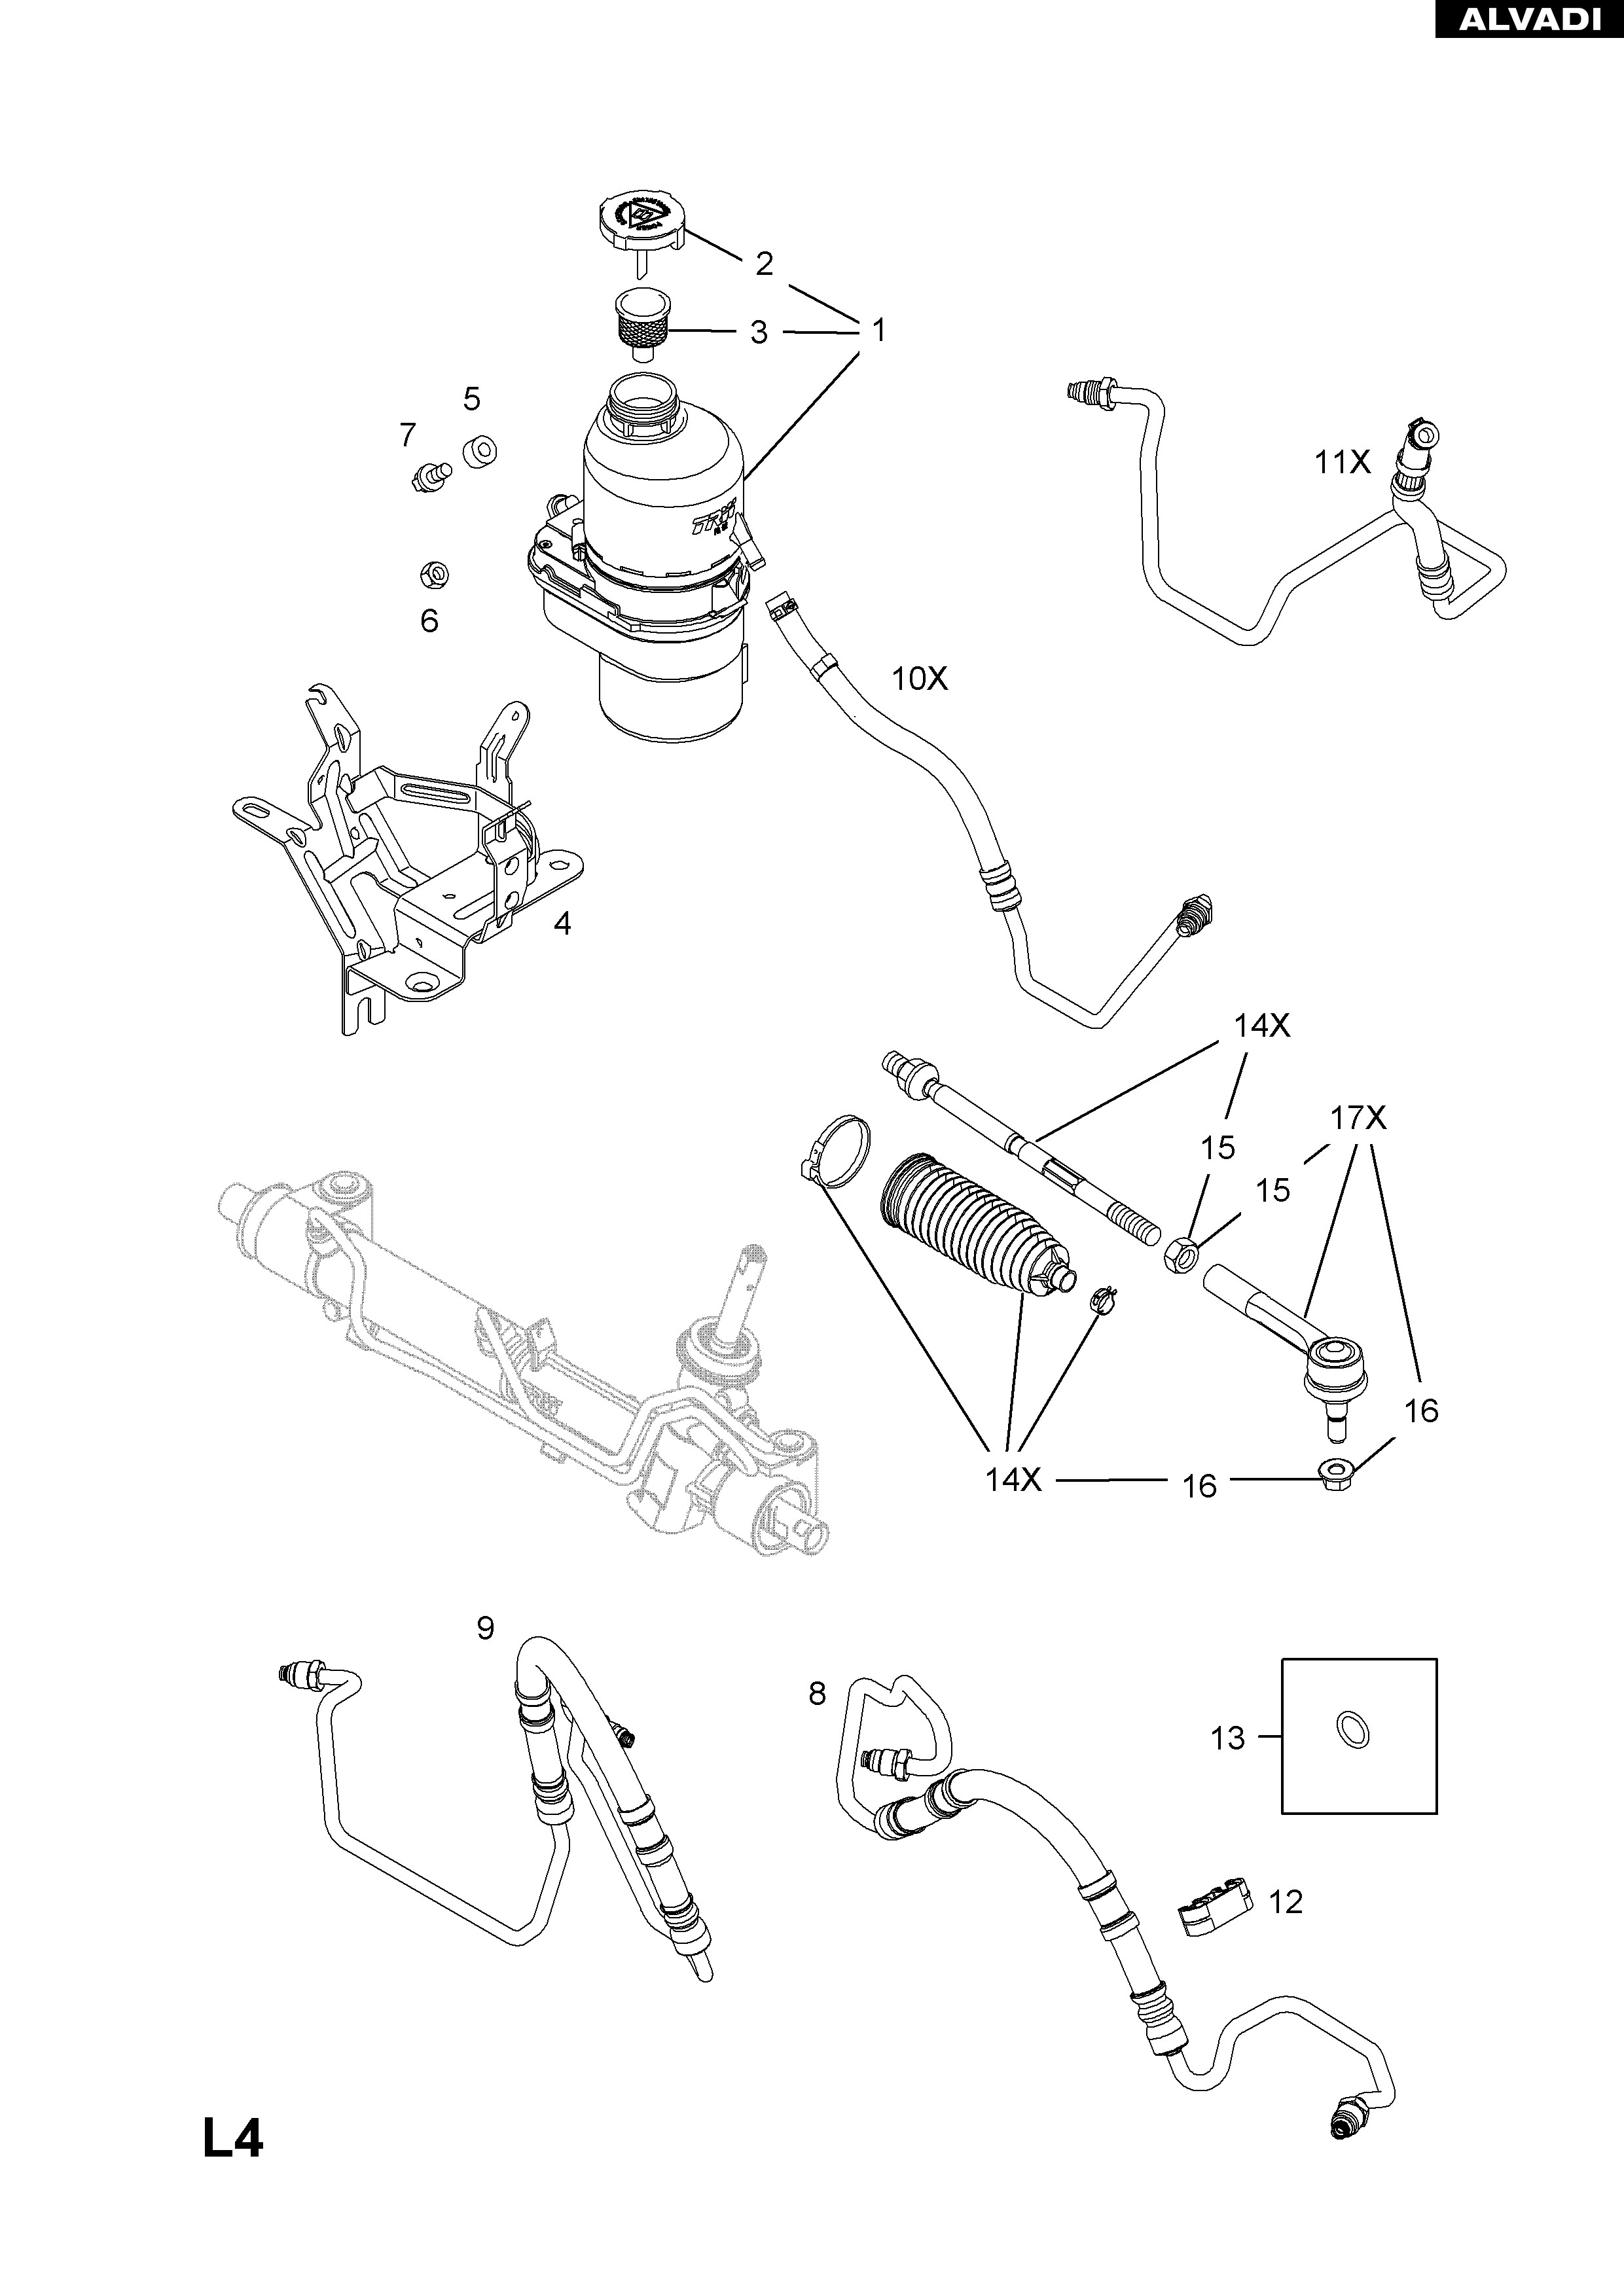 Power Steering System Diagram Opel Power Steering Pump Of Power Steering System Diagram